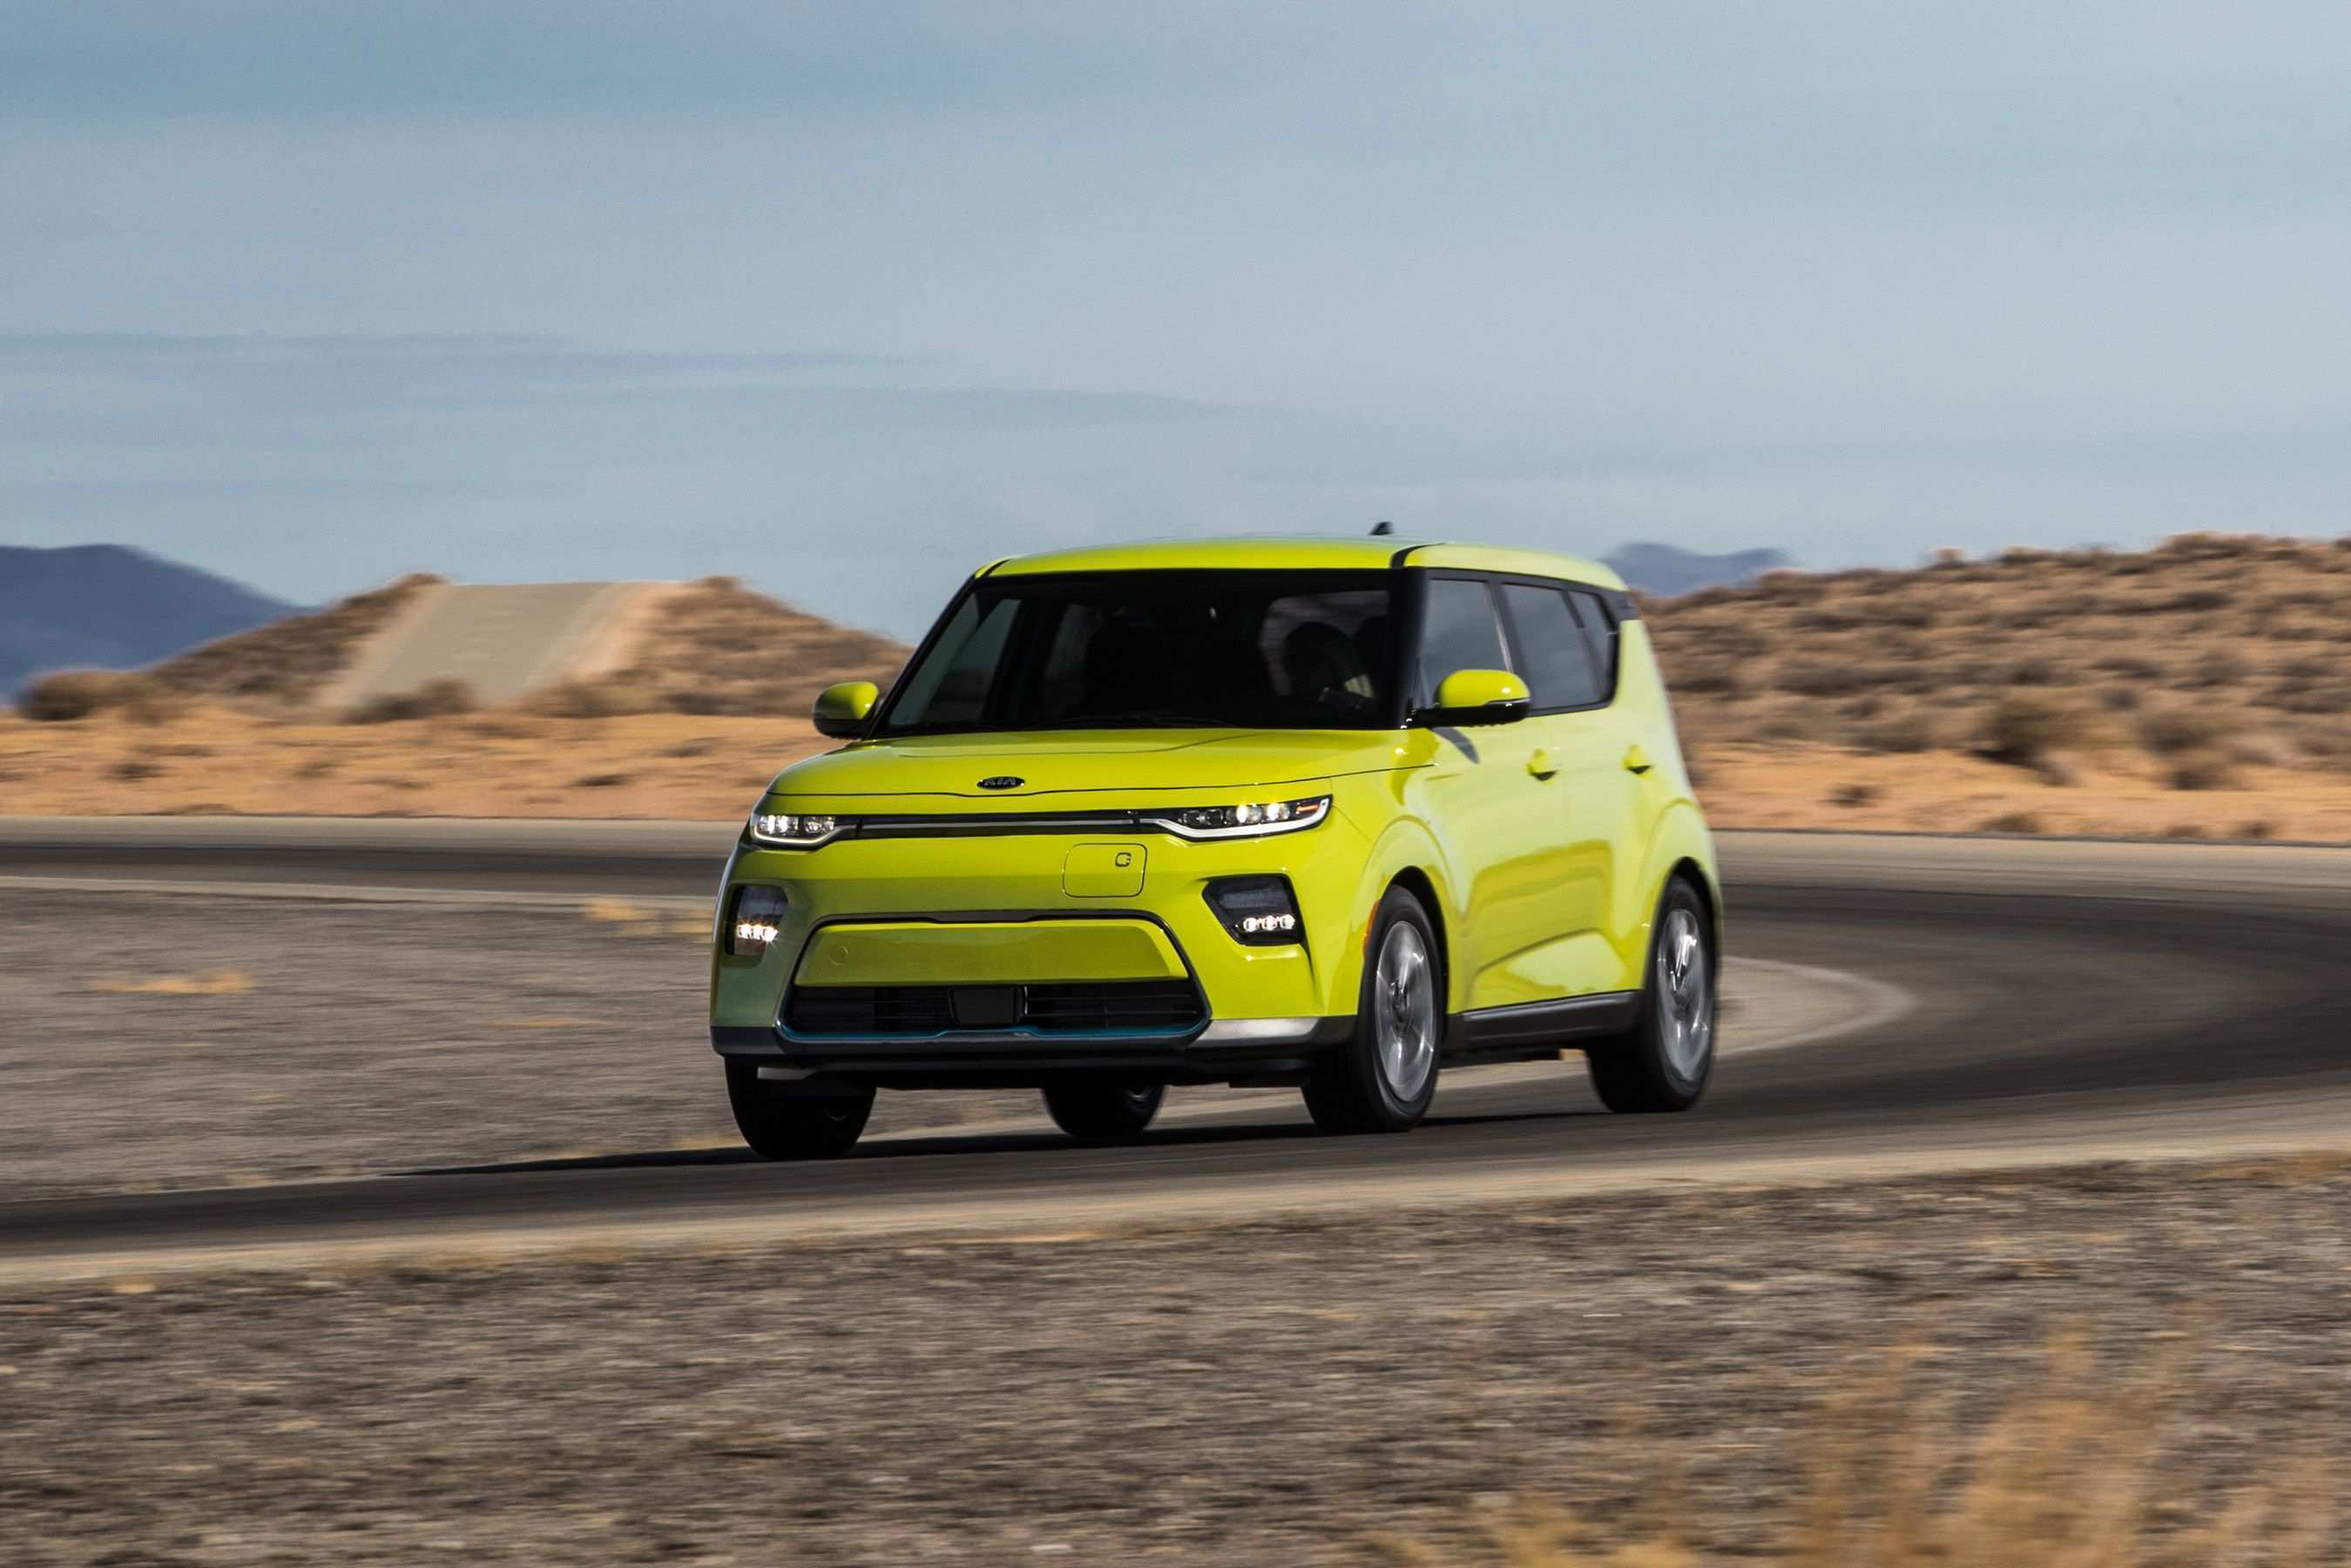 79 New Kia Soul Ev 2020 Engine with Kia Soul Ev 2020